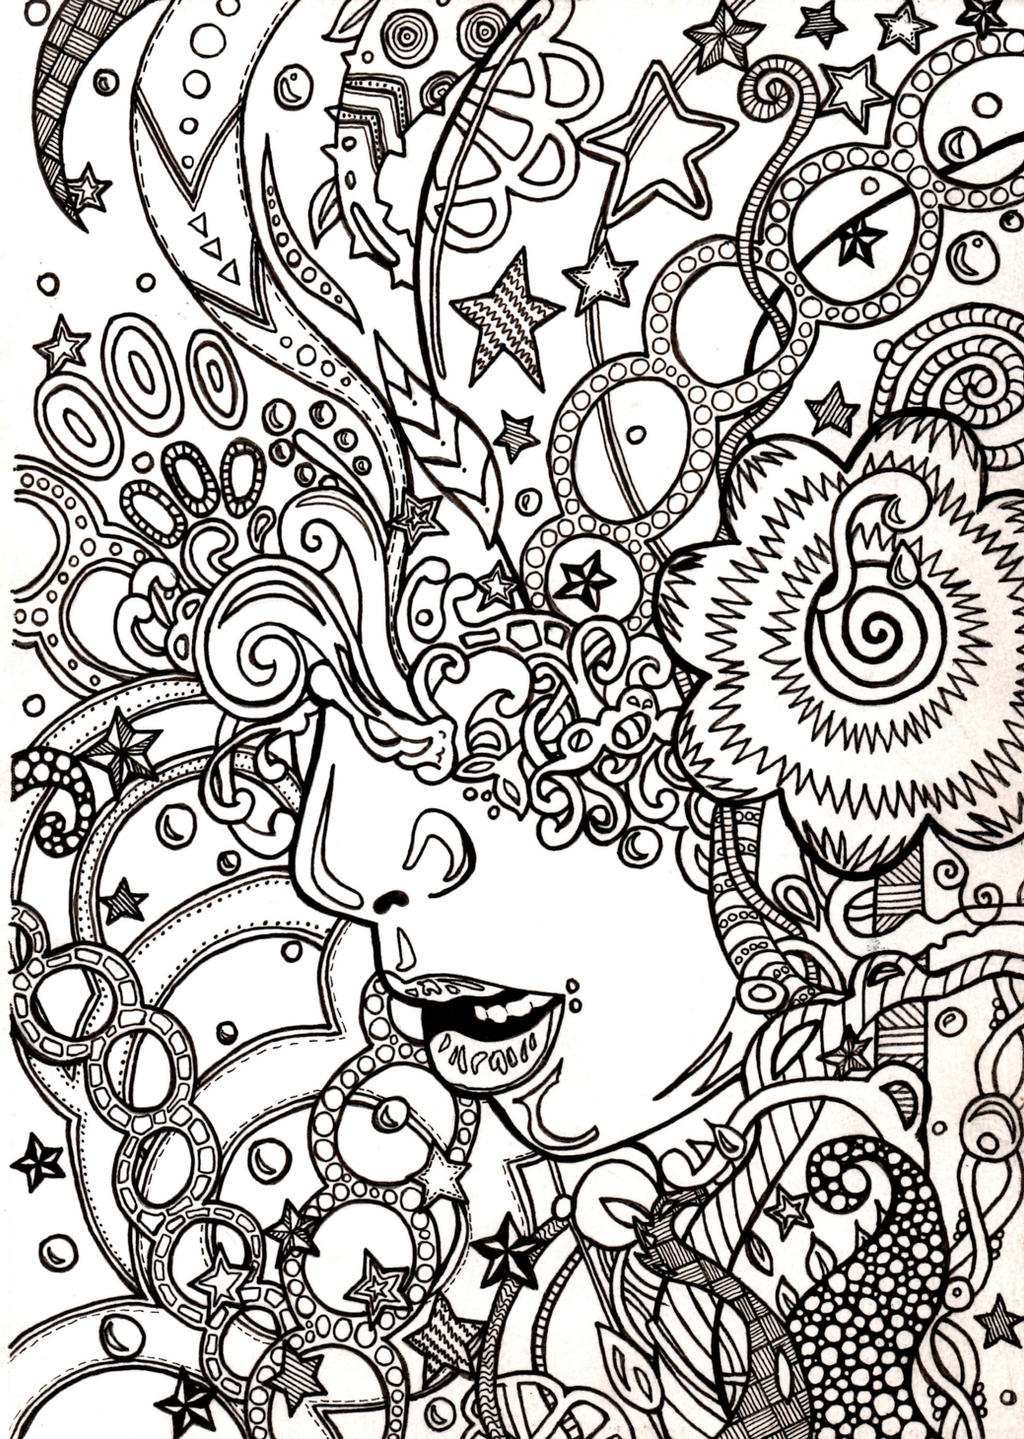 Trippy Coloring book page by ambercamiart on DeviantArt